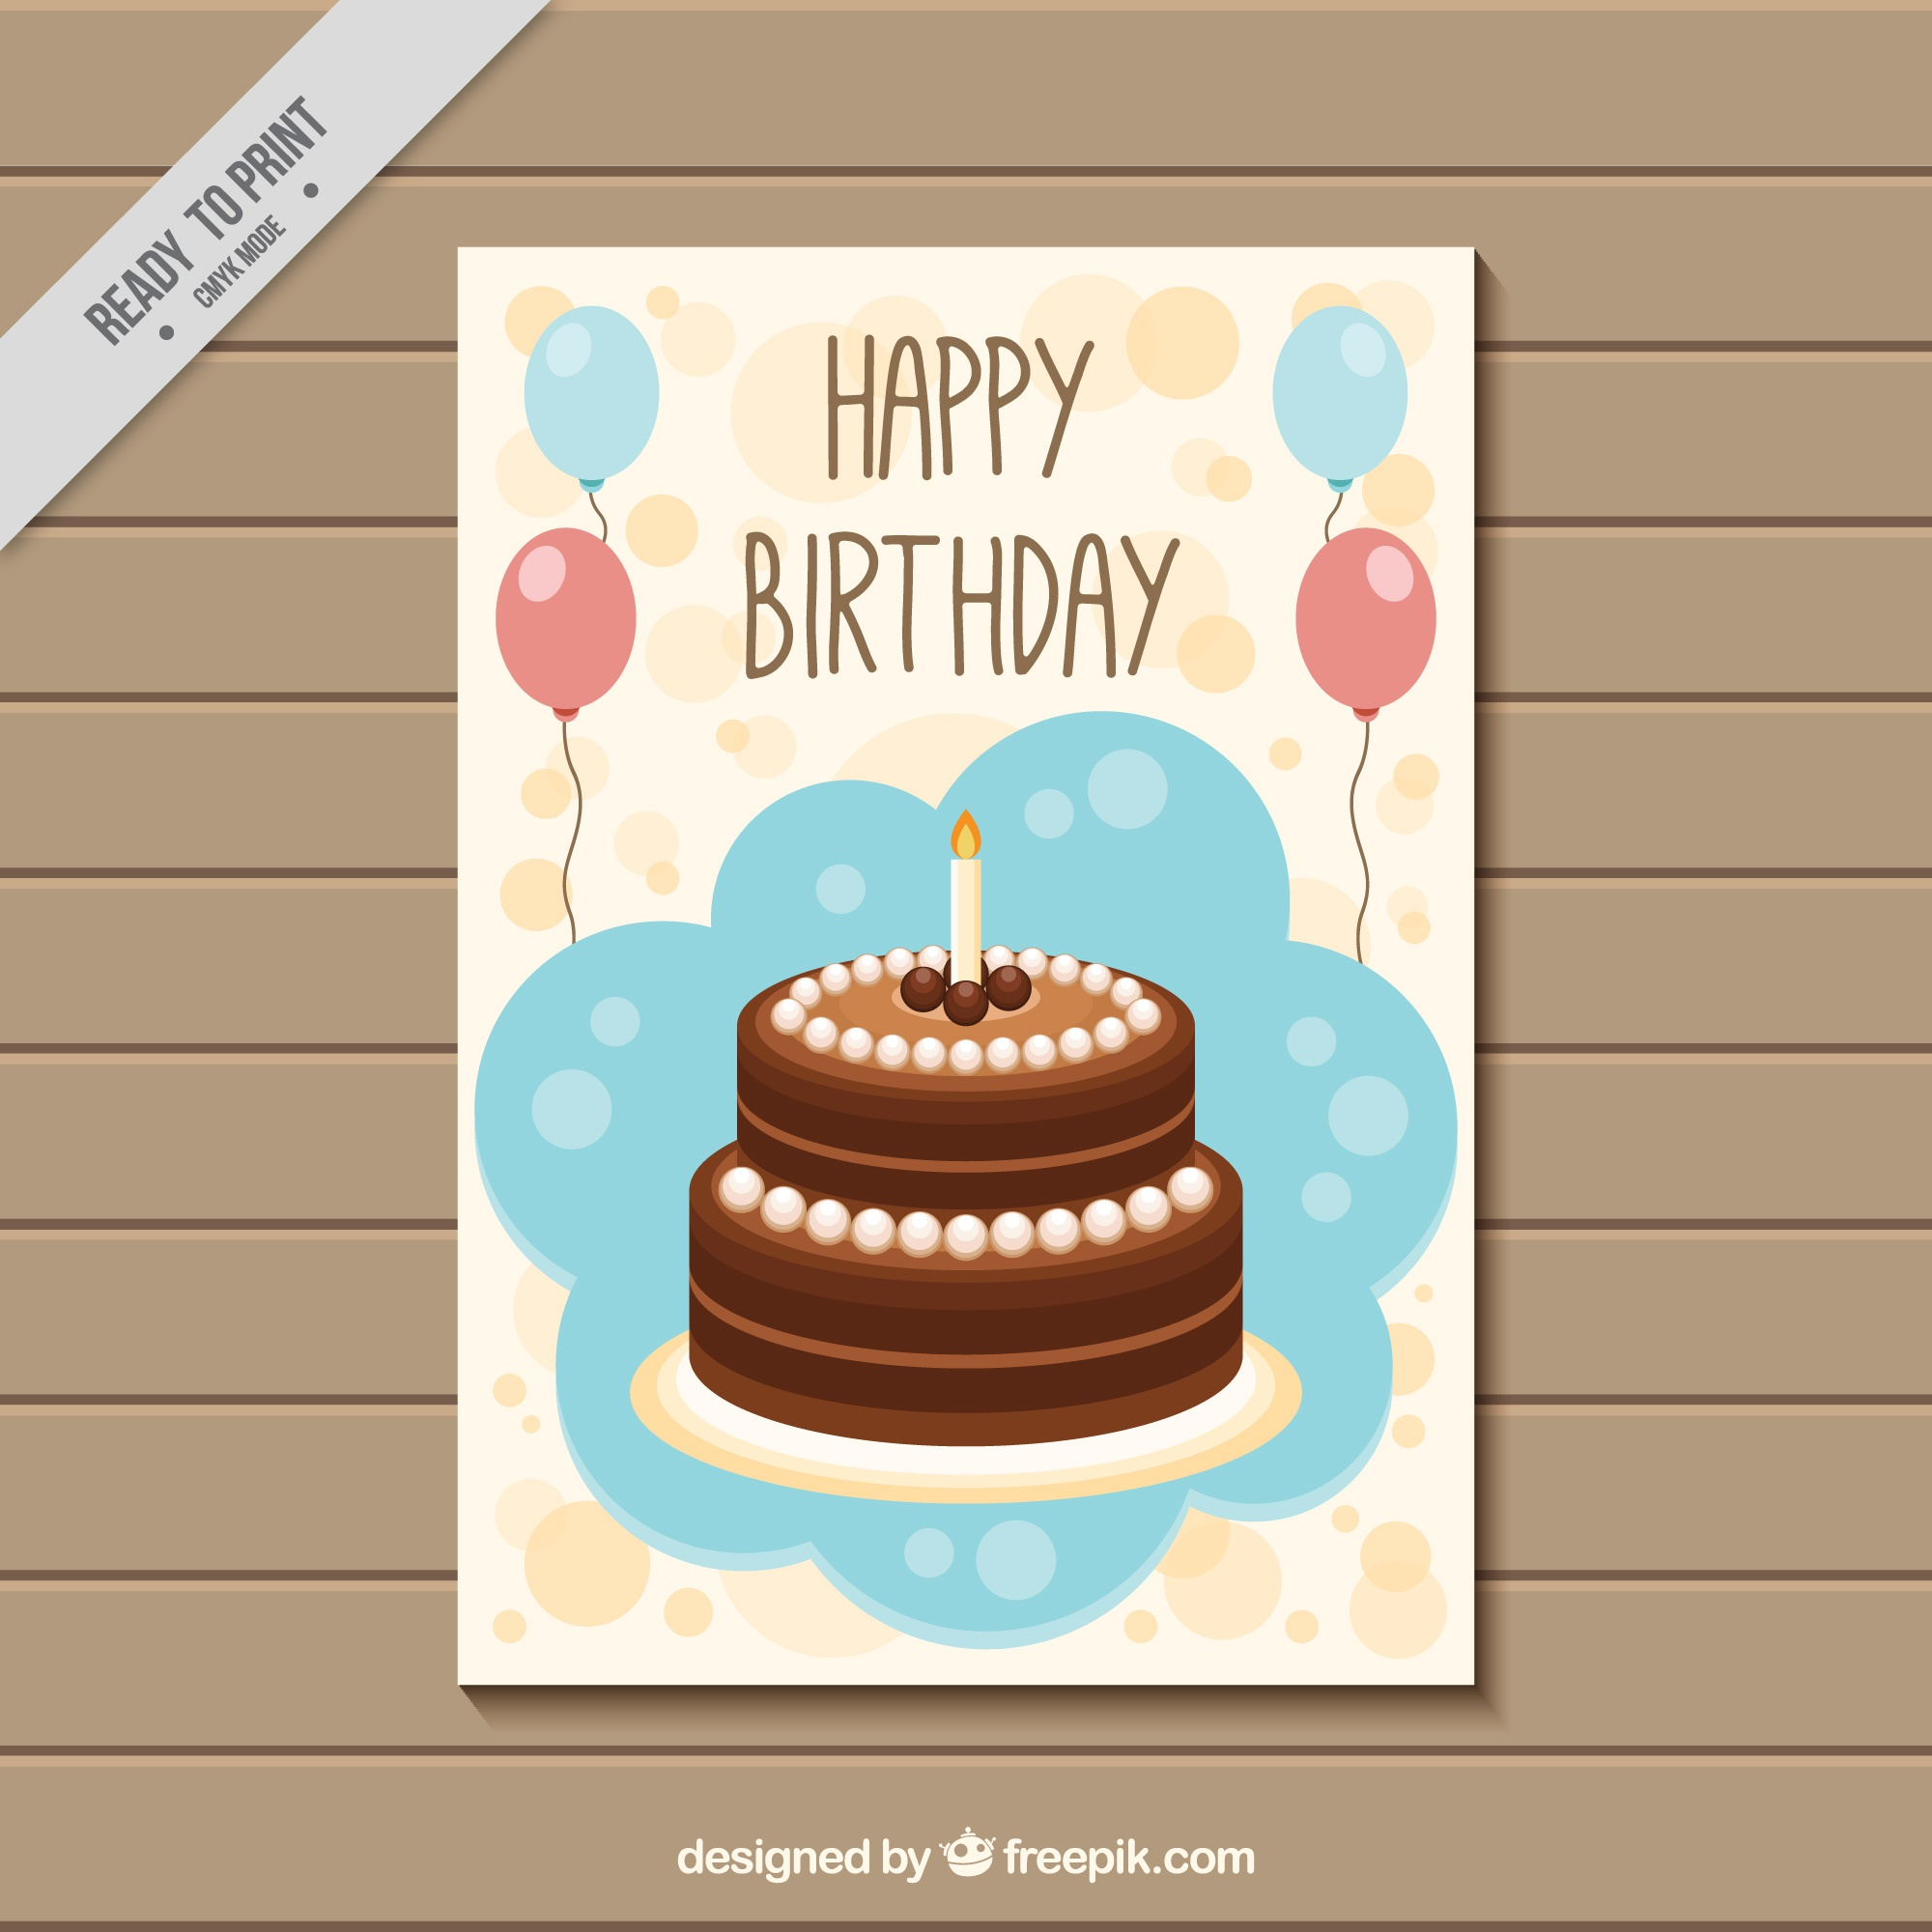 Cute greeting card with birthday cake and balloons